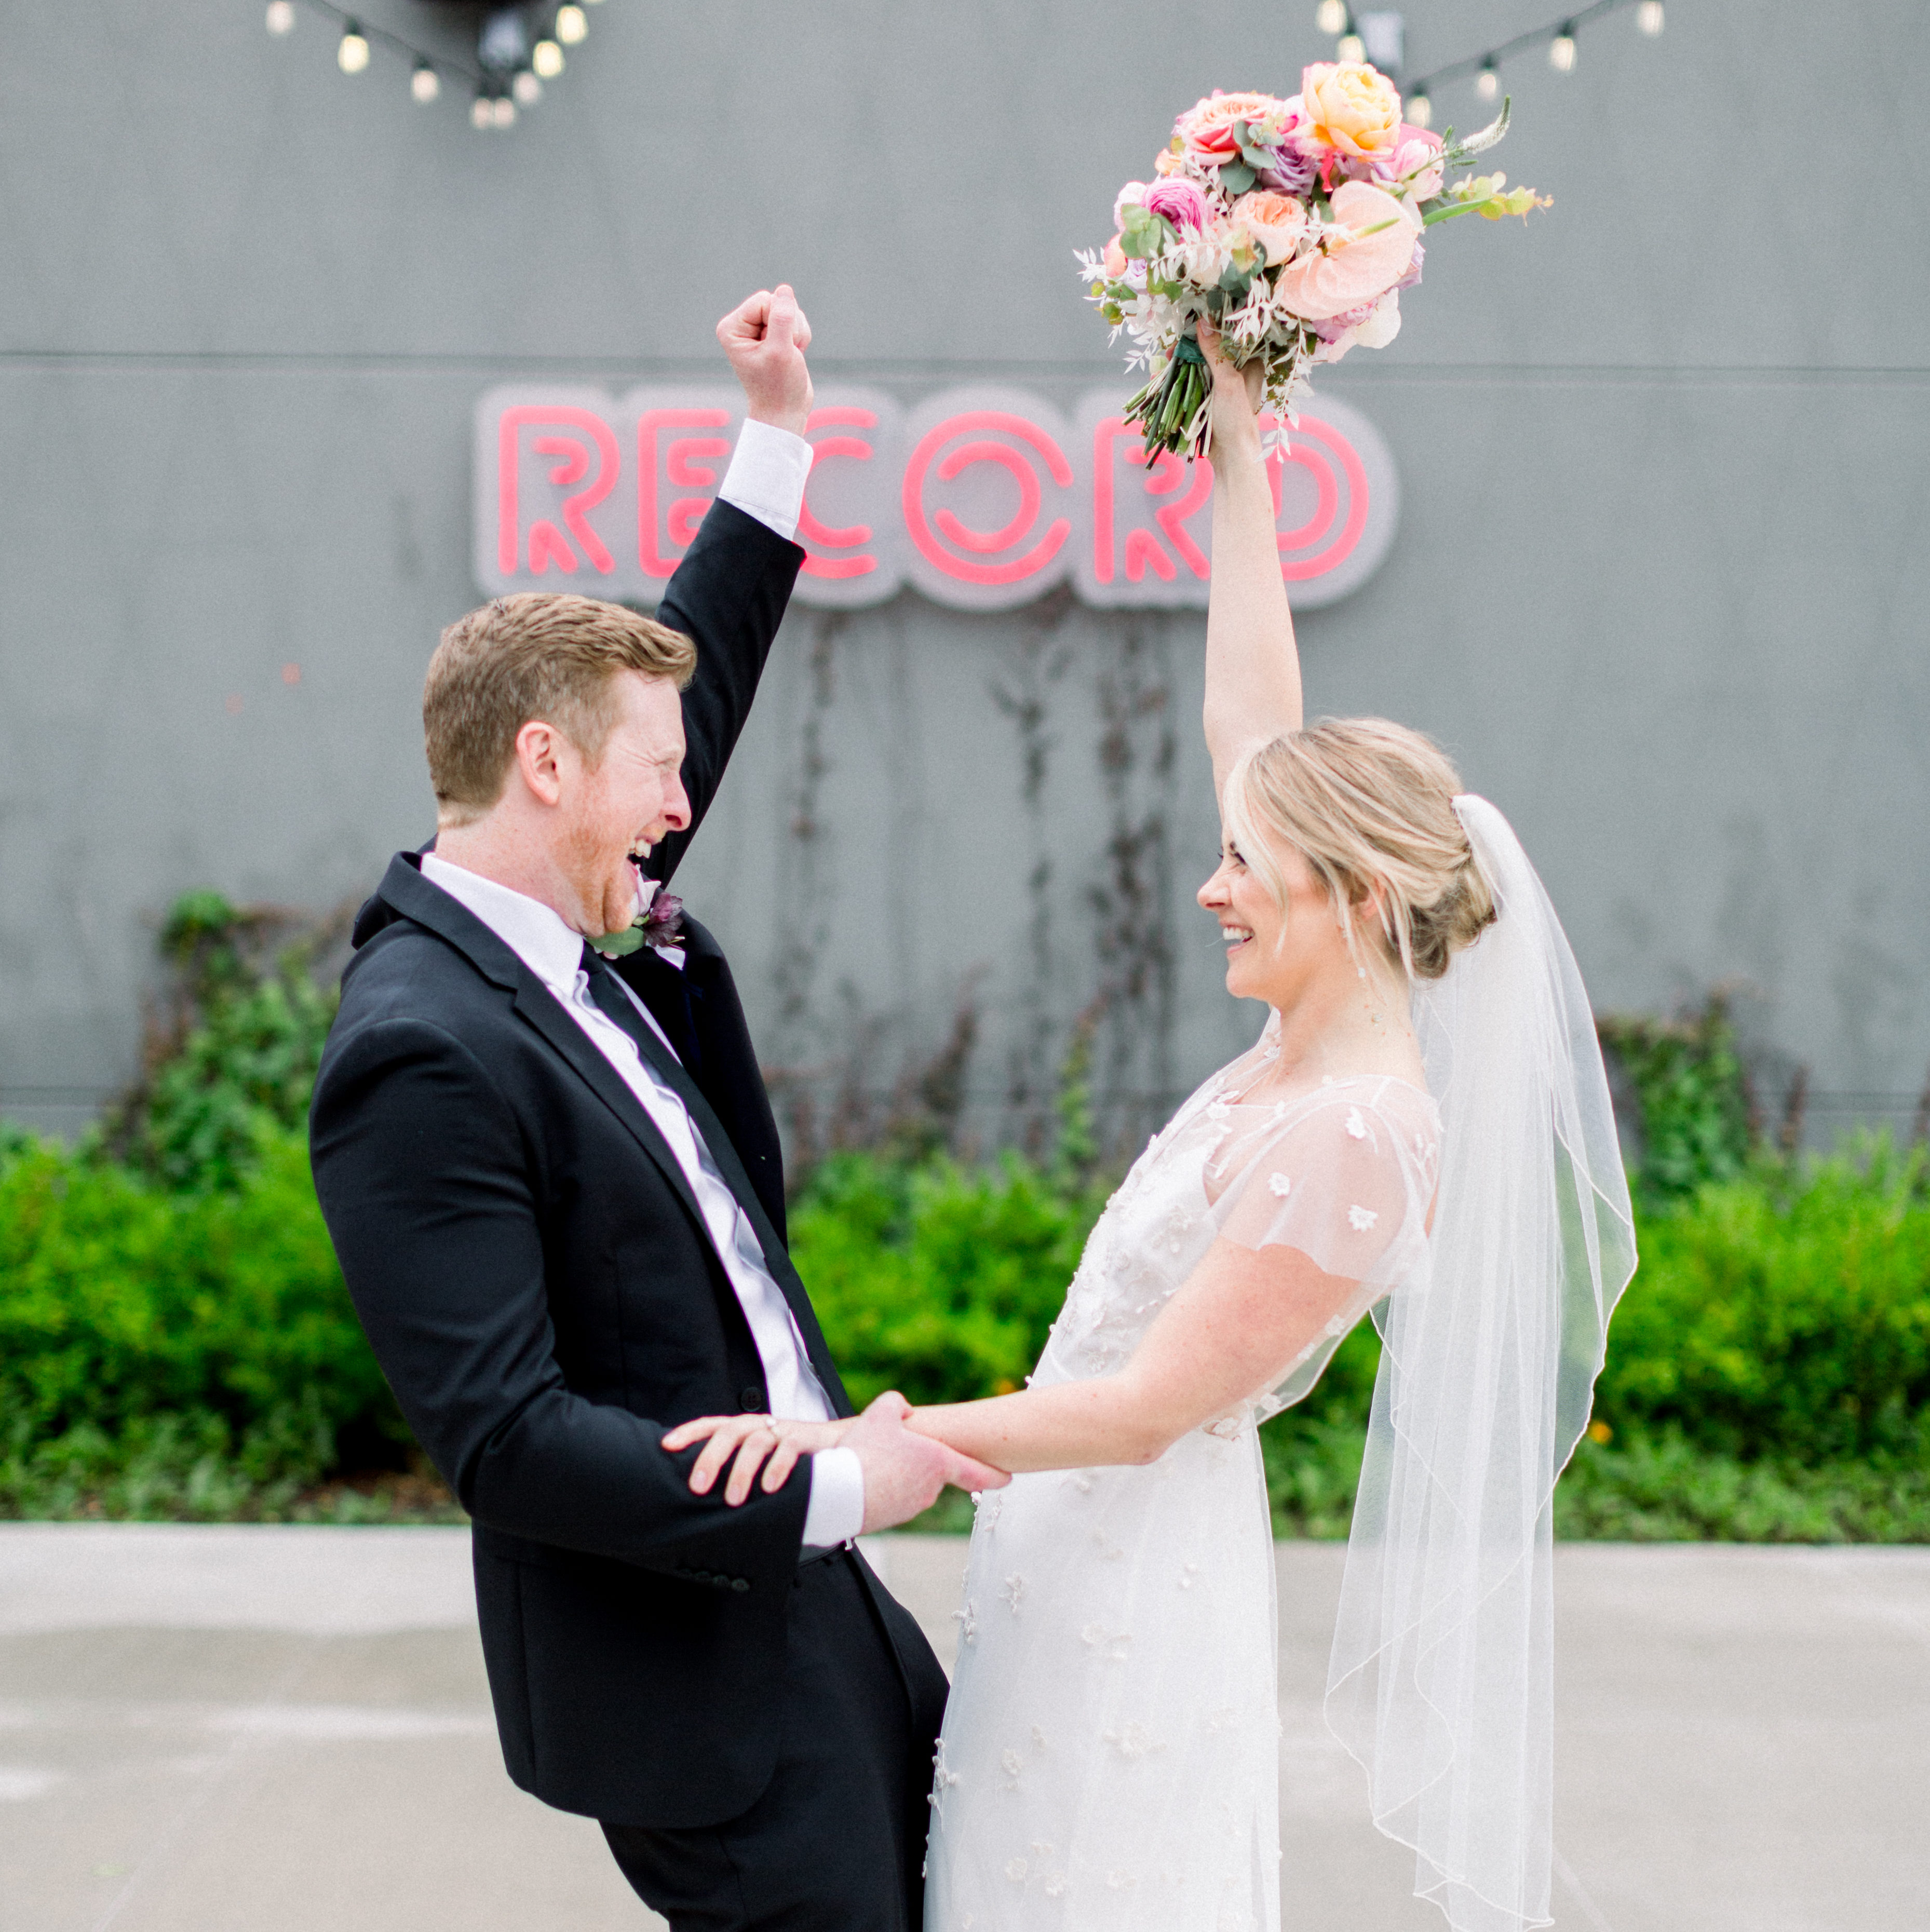 Record Downtown wedding photo with happy bride and groom